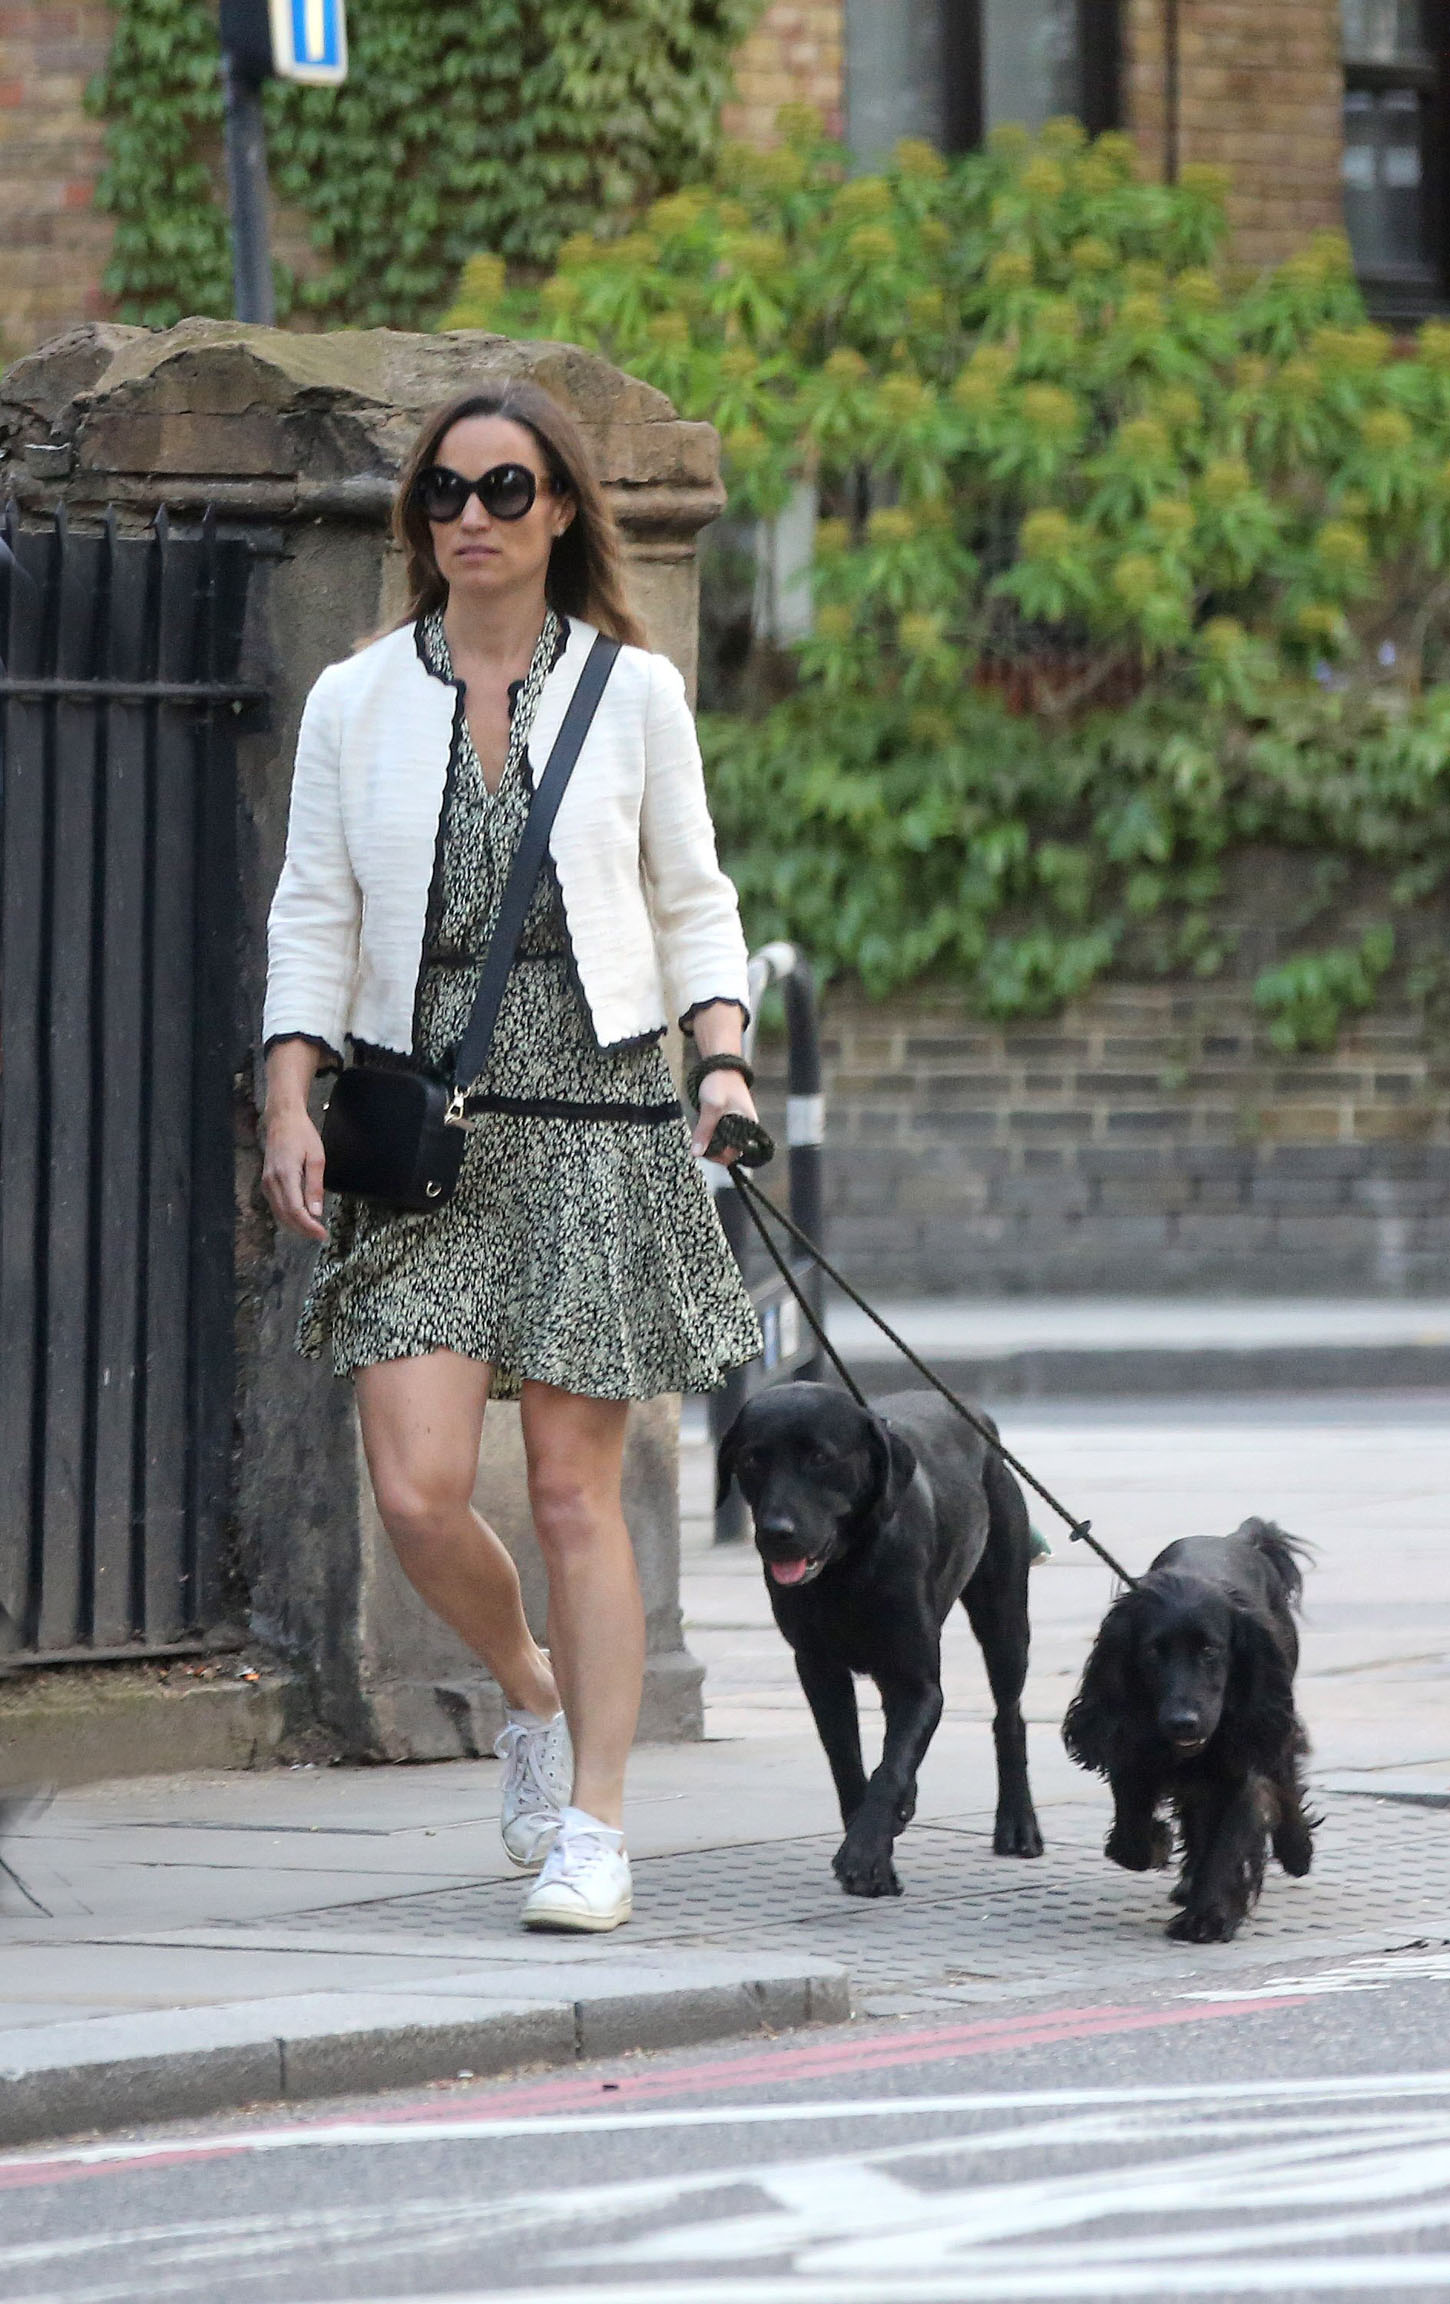 EXCLUSIVE: Pippa Middleton spotted walking beloved black Labrador pooch broke tail. 12 May 2018, Image: 371527854, License: Rights-managed, Restrictions: NO Australia, France, Germany, New Zealand, United Kingdom, Model Release: no, Credit line: Profimedia, Mega Agency